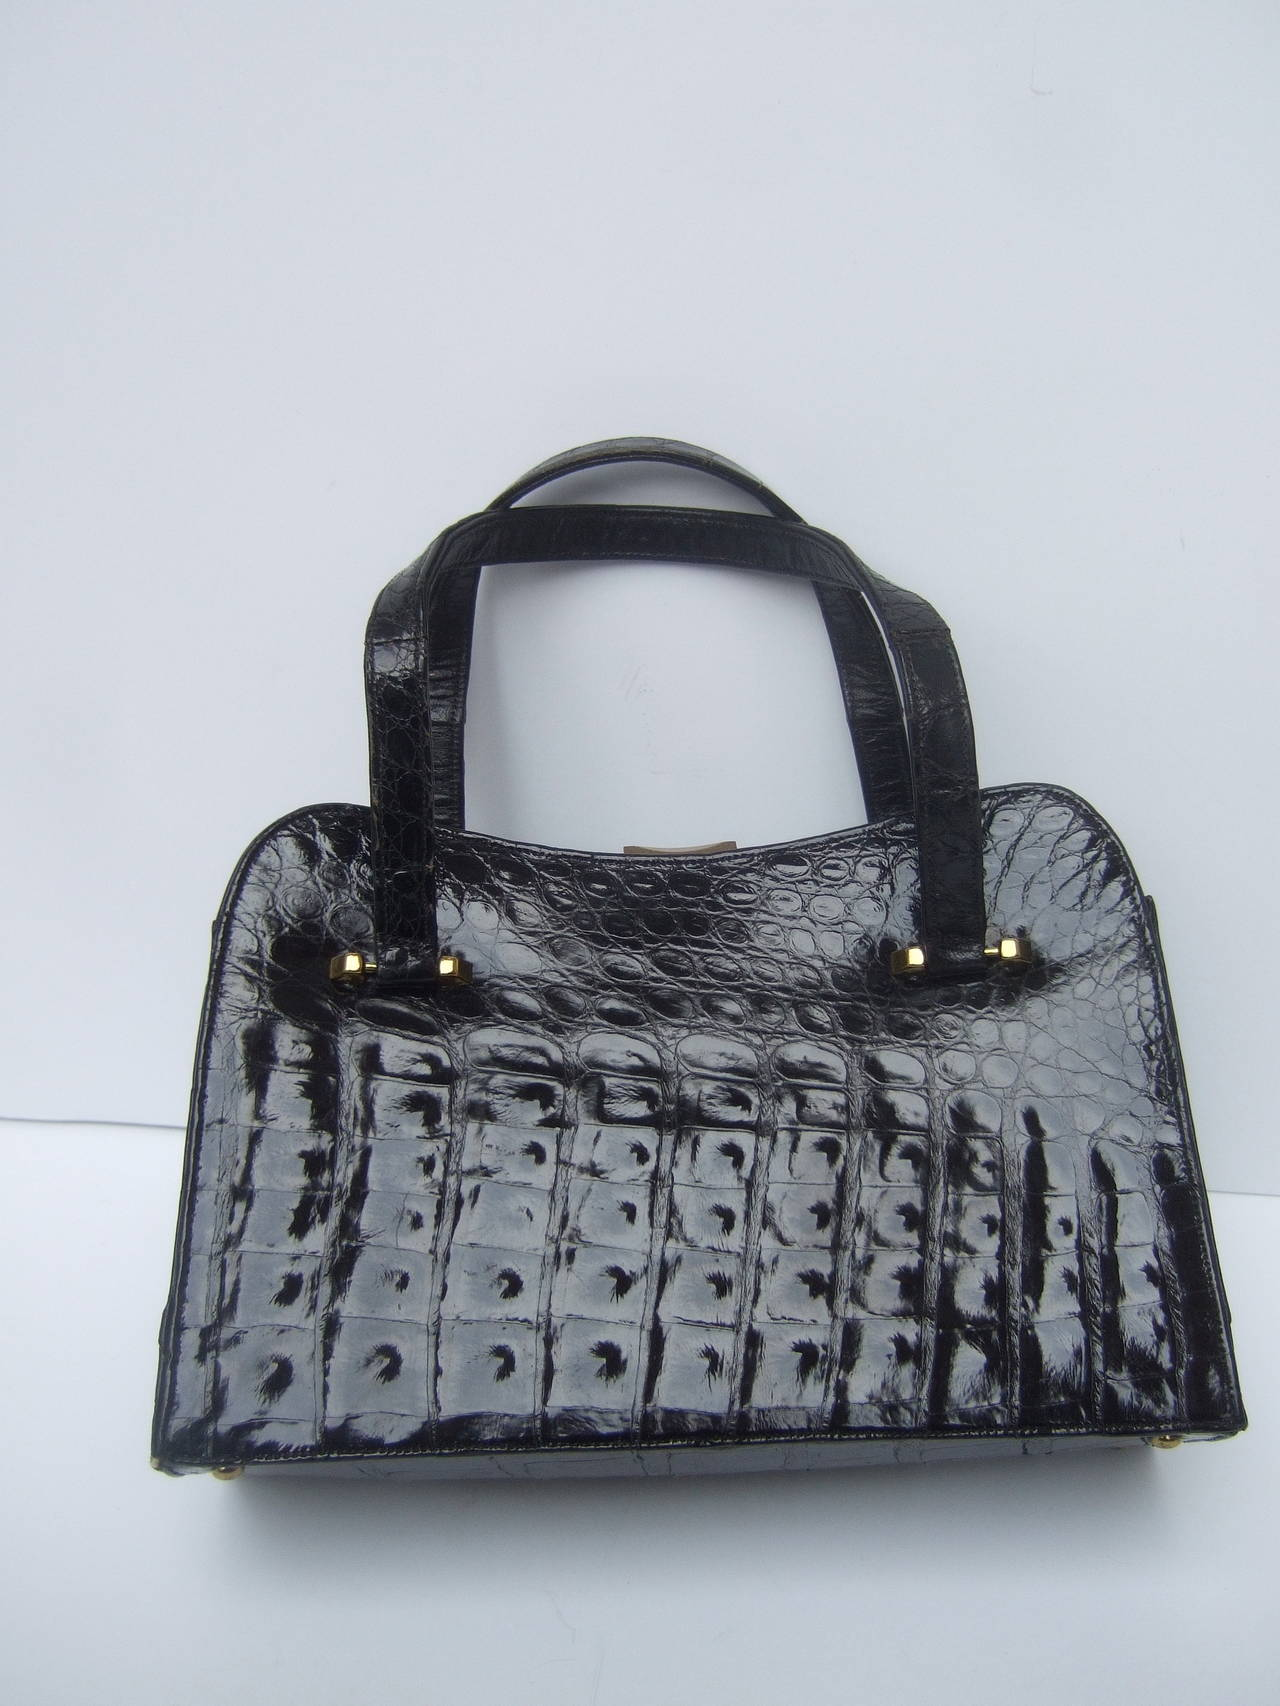 Exotic Sleek Black Alligator Handbag c 1960 For Sale 1